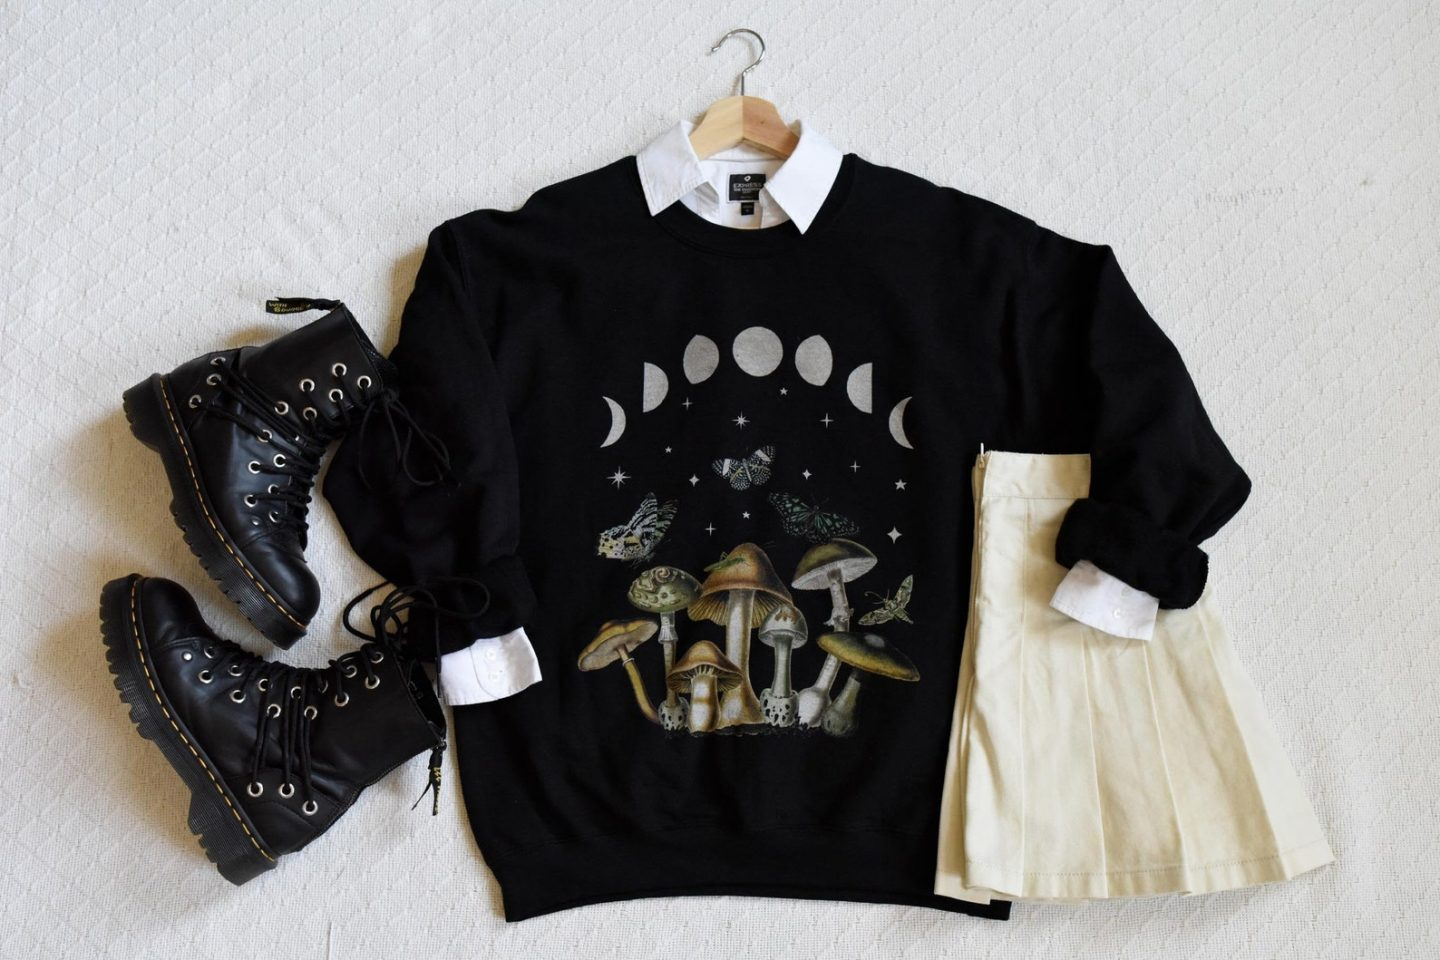 Black sweatshirt with mushrooms for edgy golincore outfit